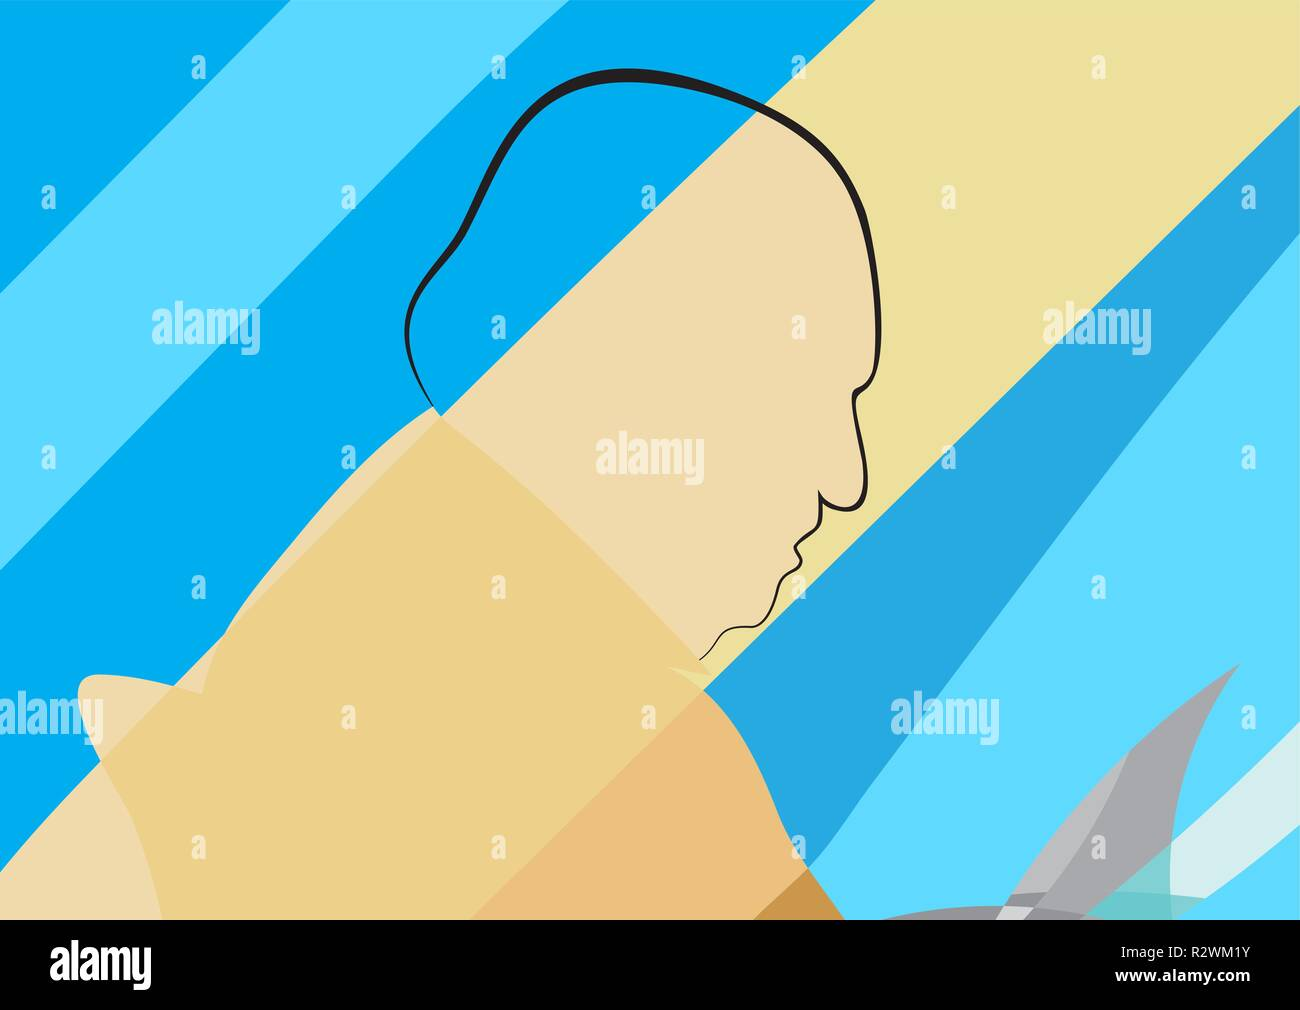 old man sitting and reading something - vector illustration - Stock Vector